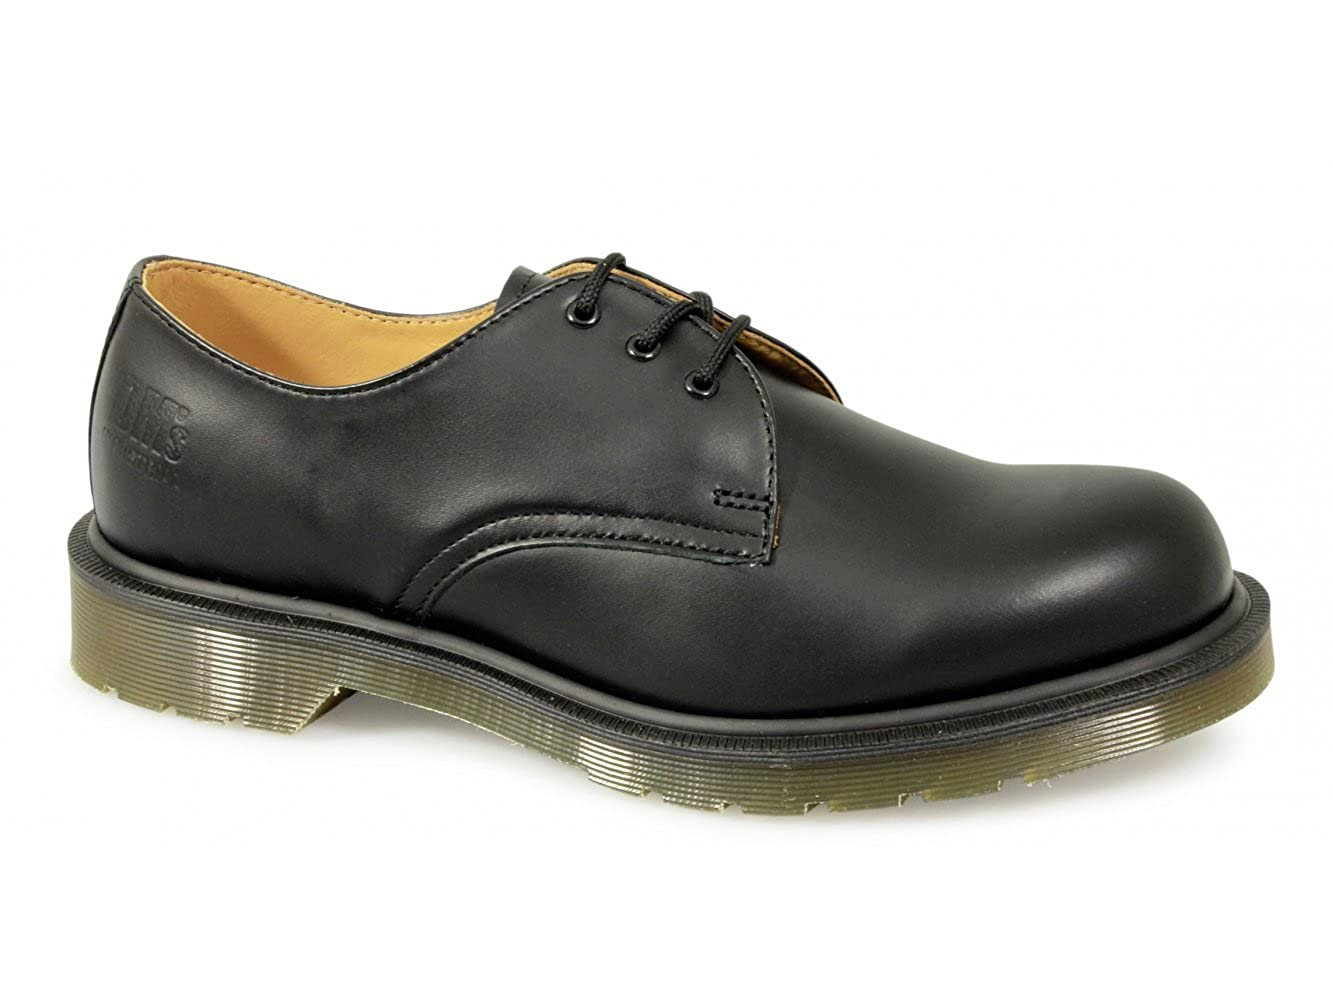 7cf0426ec1 Dr Martens Black 3 Eyelet Leather Gibson Non-Safety Work Shoe:  Amazon.co.uk: Shoes & Bags